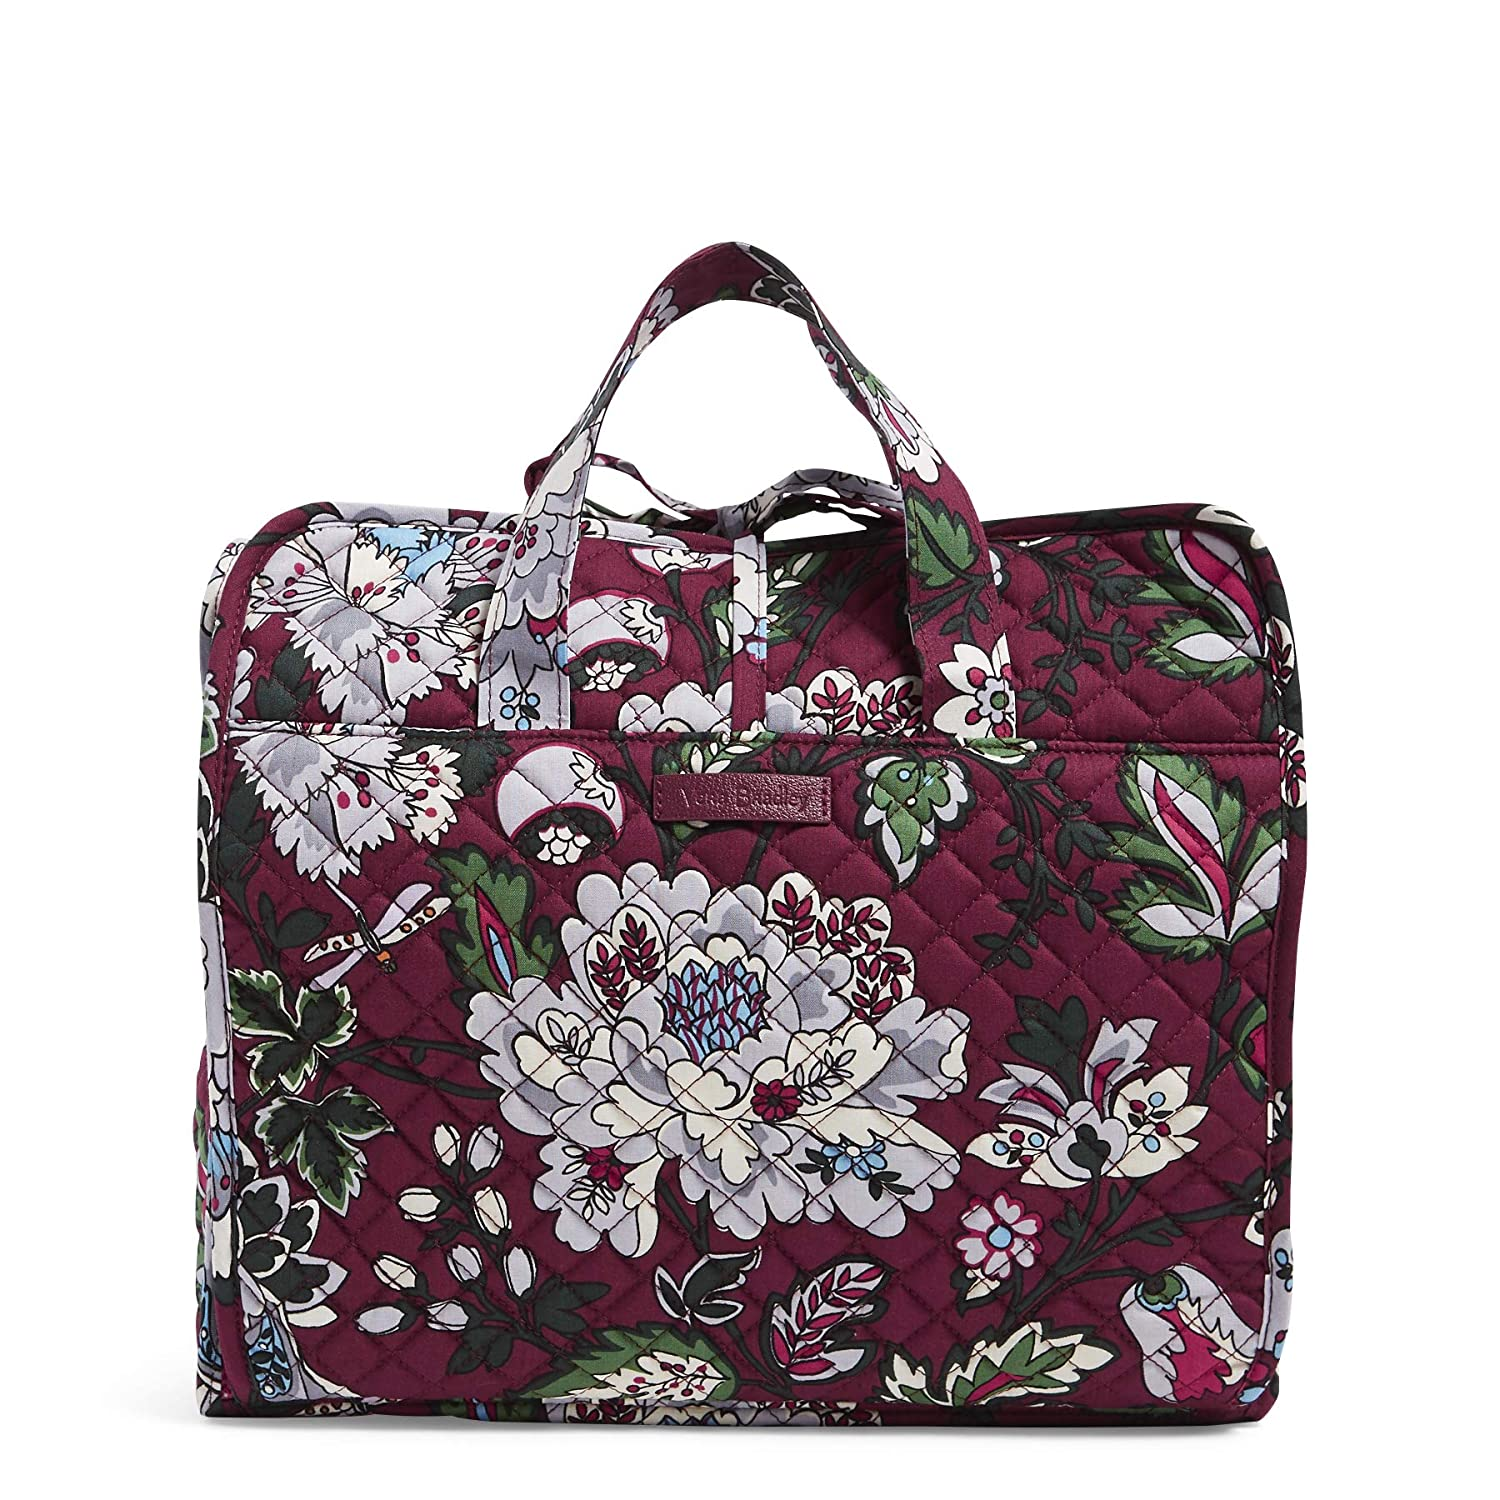 【SEAL限定商品】 Vera Vera Bradley レディース B07GTF1NMW One Size|Bordeaux B07GTF1NMW Blooms Size Bordeaux Blooms One Size, 【爆買い!】:6f9d6d1d --- svecha37.ru